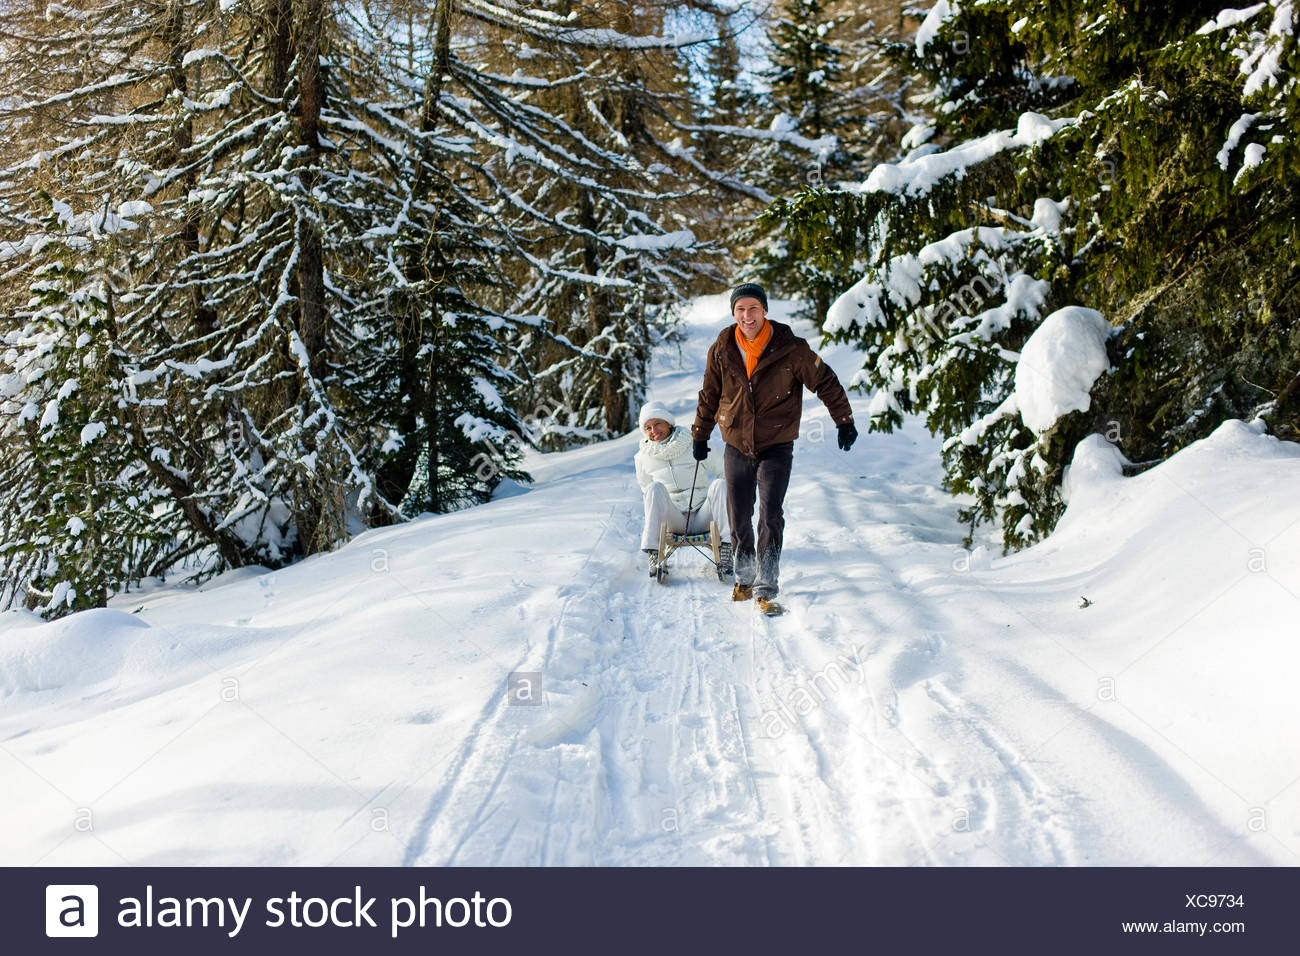 Man pulling a woman sitting on a sledge, Muehlen, Styria, Austria - Stock Image